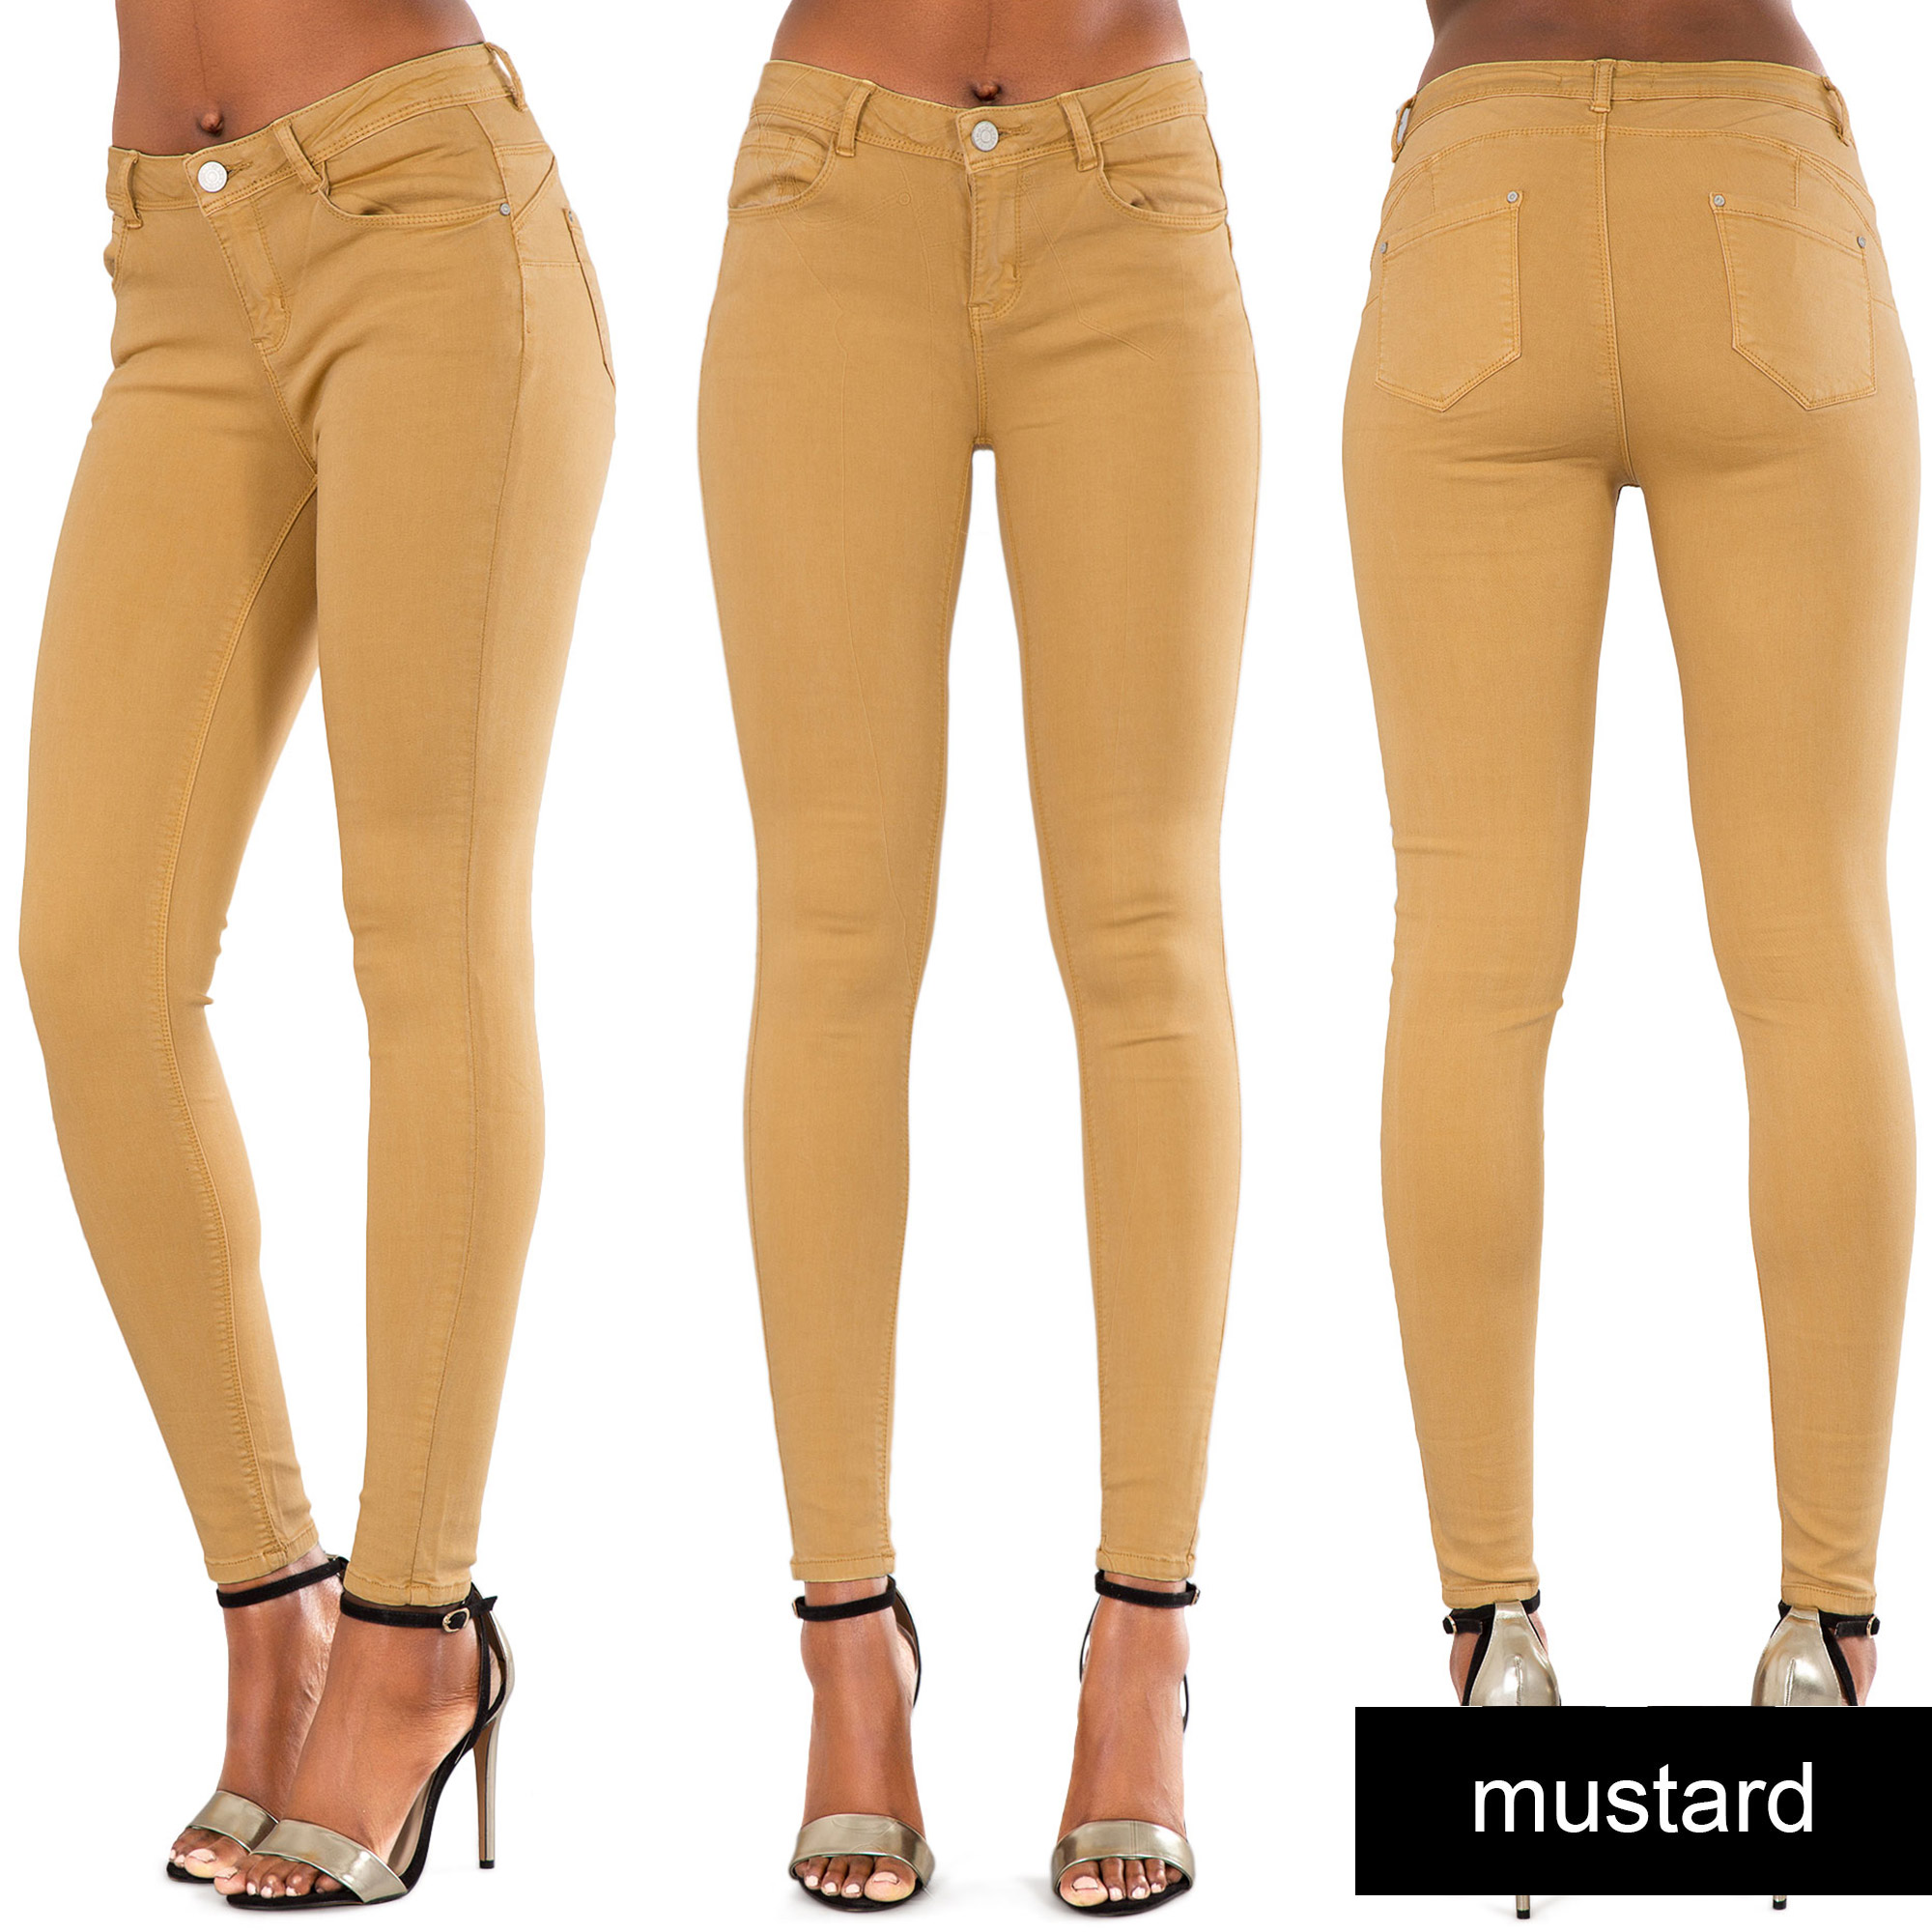 Sep 18, · High-waisted jeans that are skinny or flared look great with high heels as the height will elongate your legs. Try patterned heels for a fun look or heels in a neutral color to offset jeans Views: 32K.